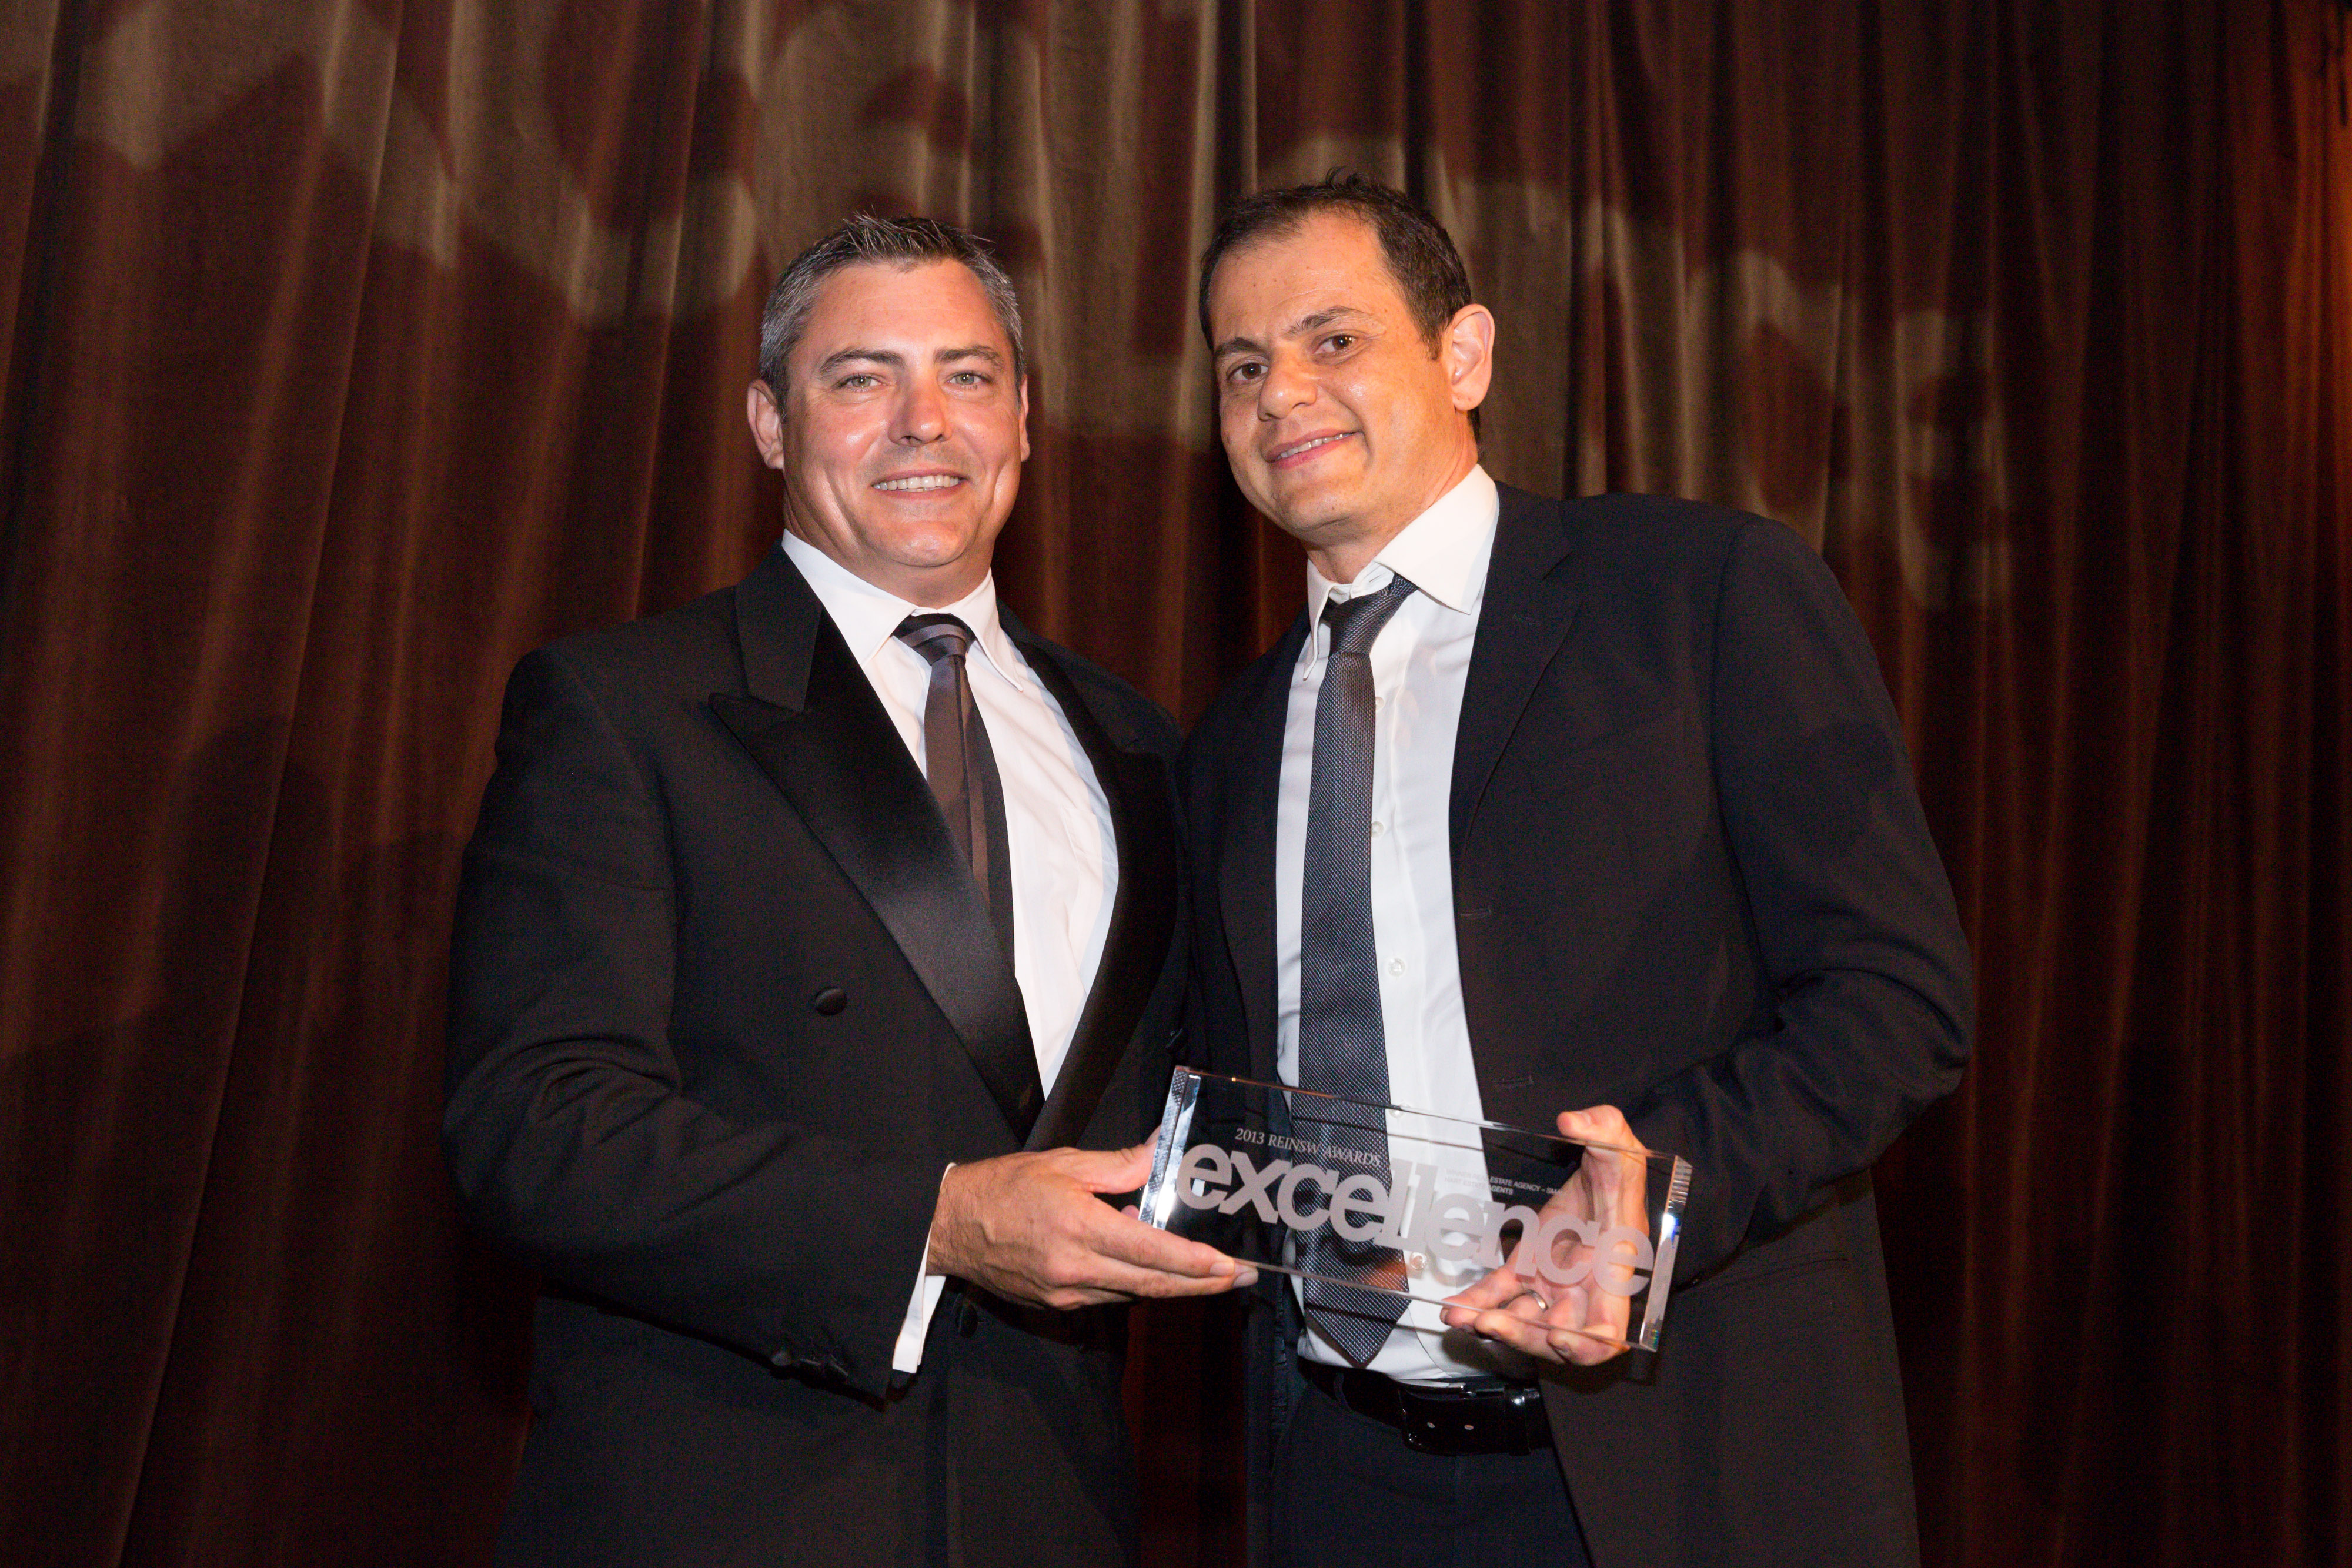 ALex Hart receiving our award for Real Estate Agency (Small) at the REINSW Excellence Awards 2013